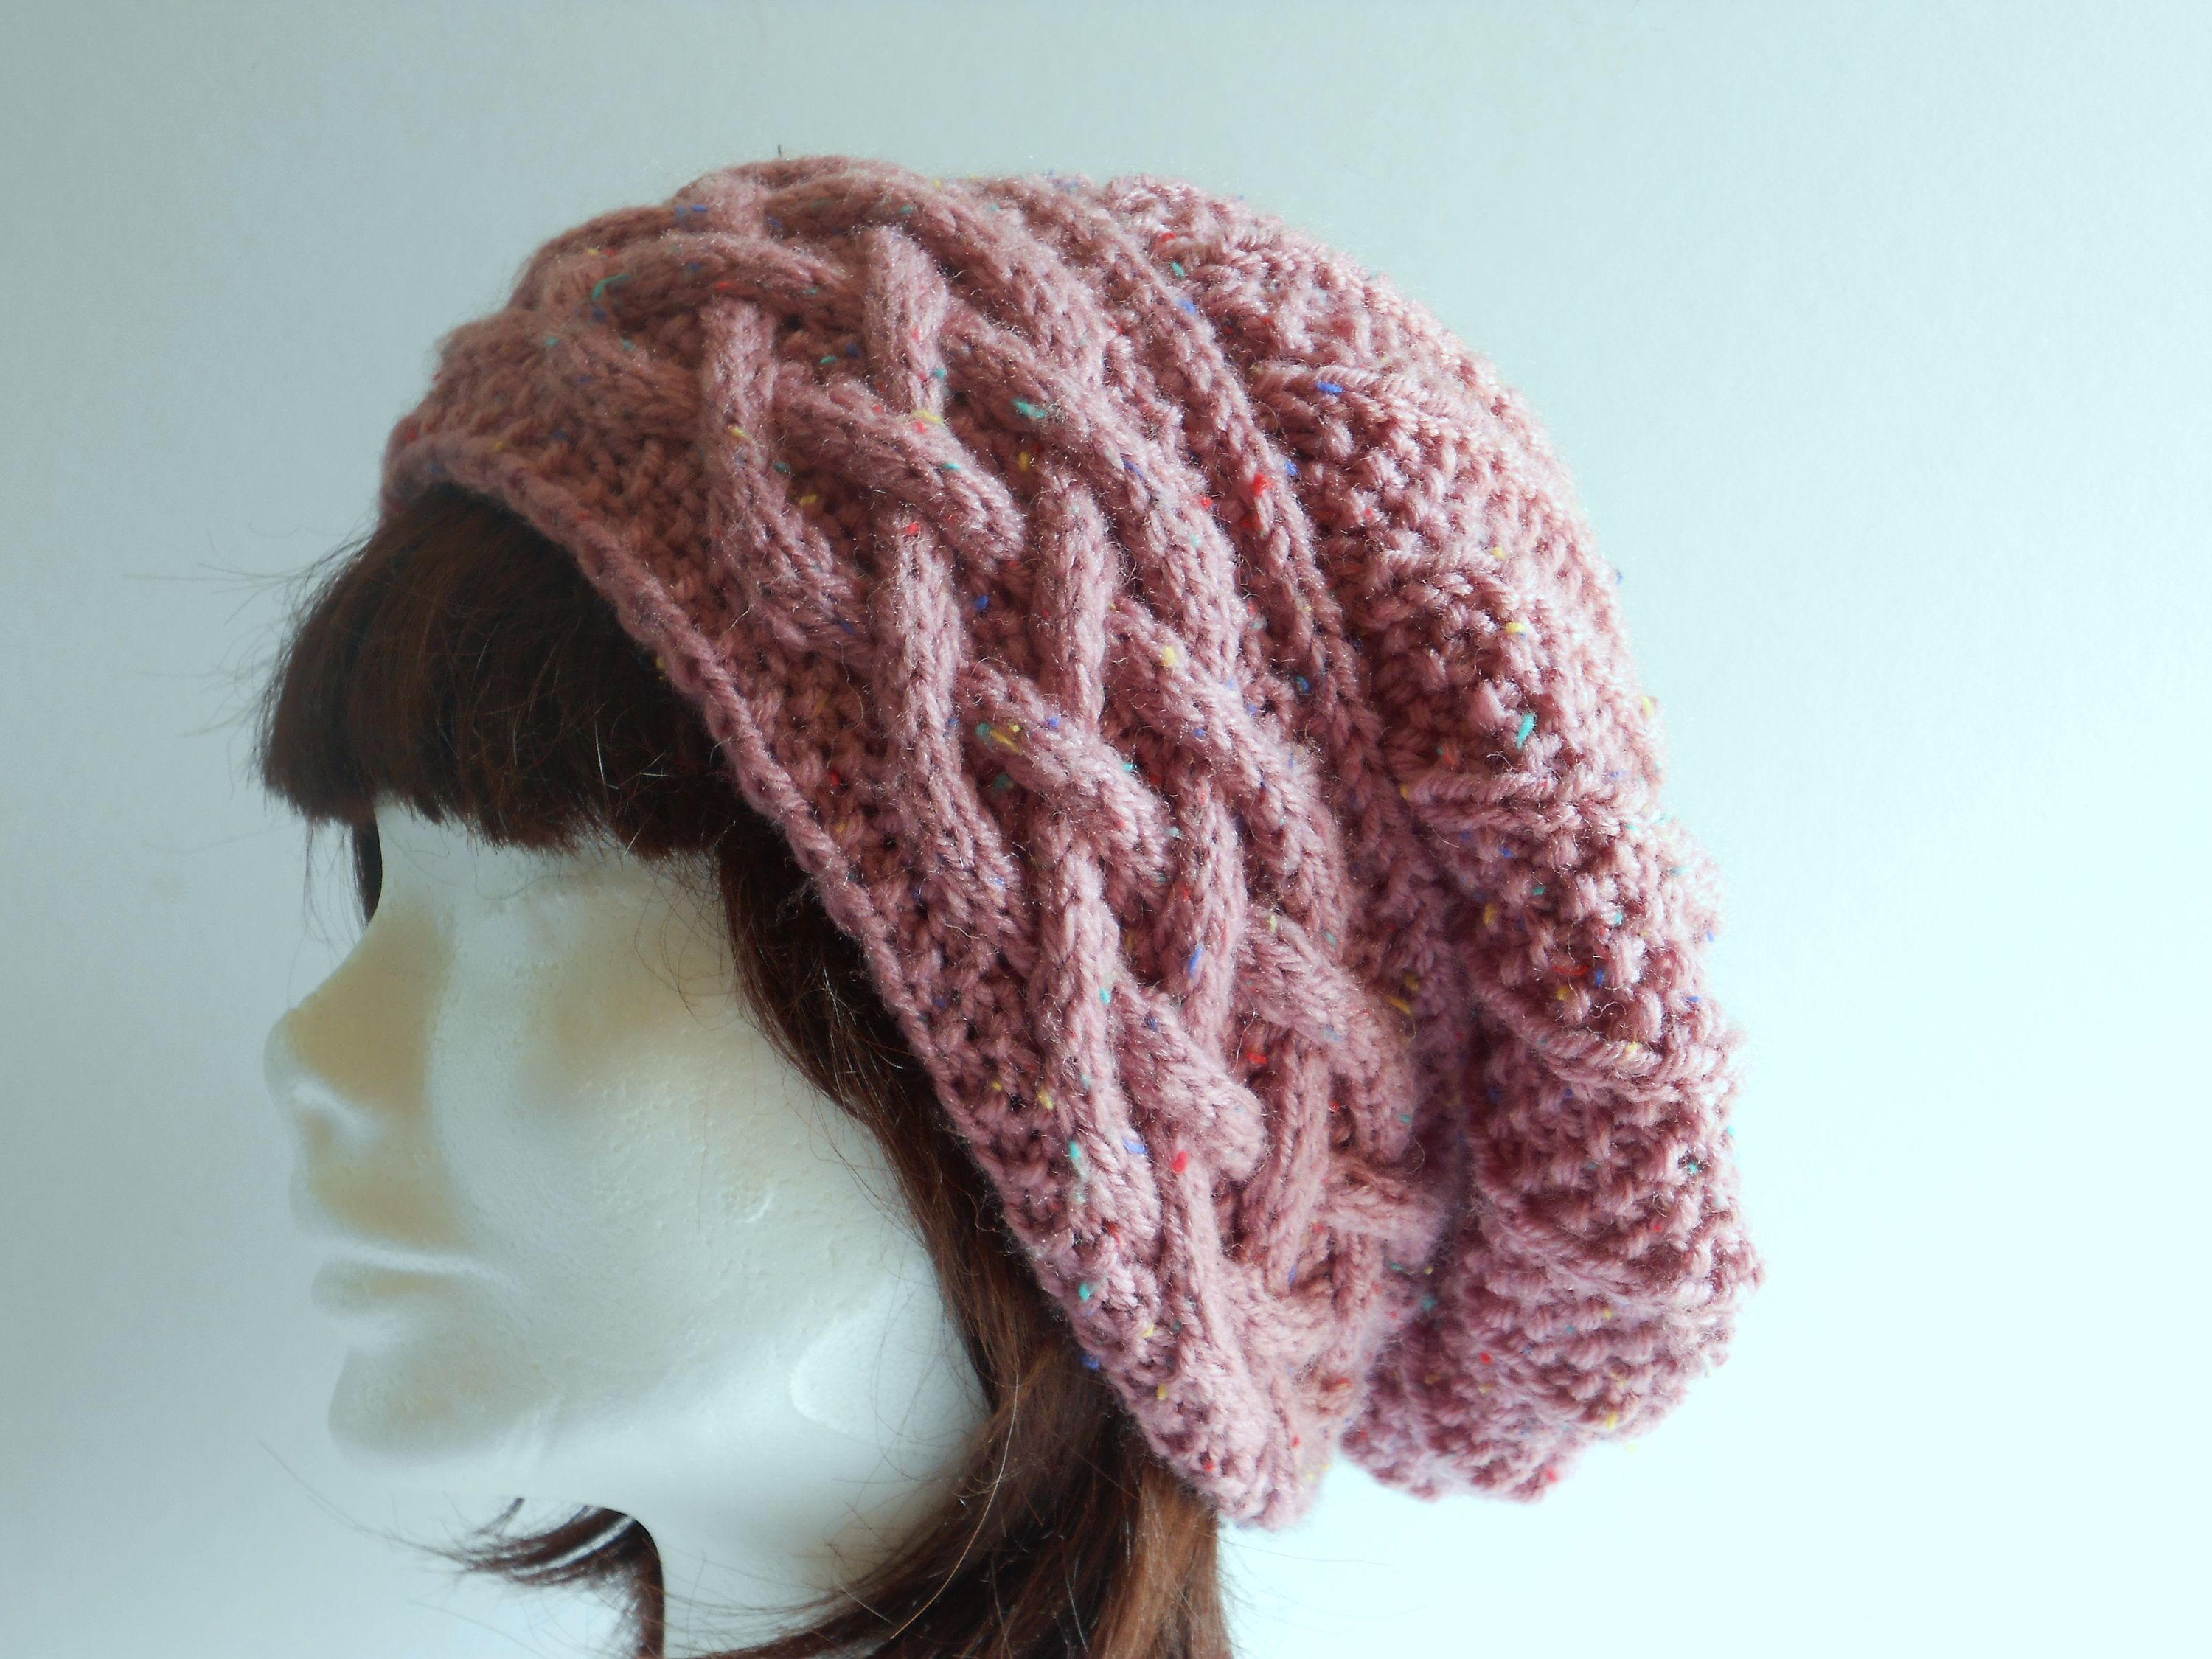 Slouchy Beret for women to wear in winter. Women's pink slouch cable hat. Christmas Gift for Wife. Handmade gift for her.